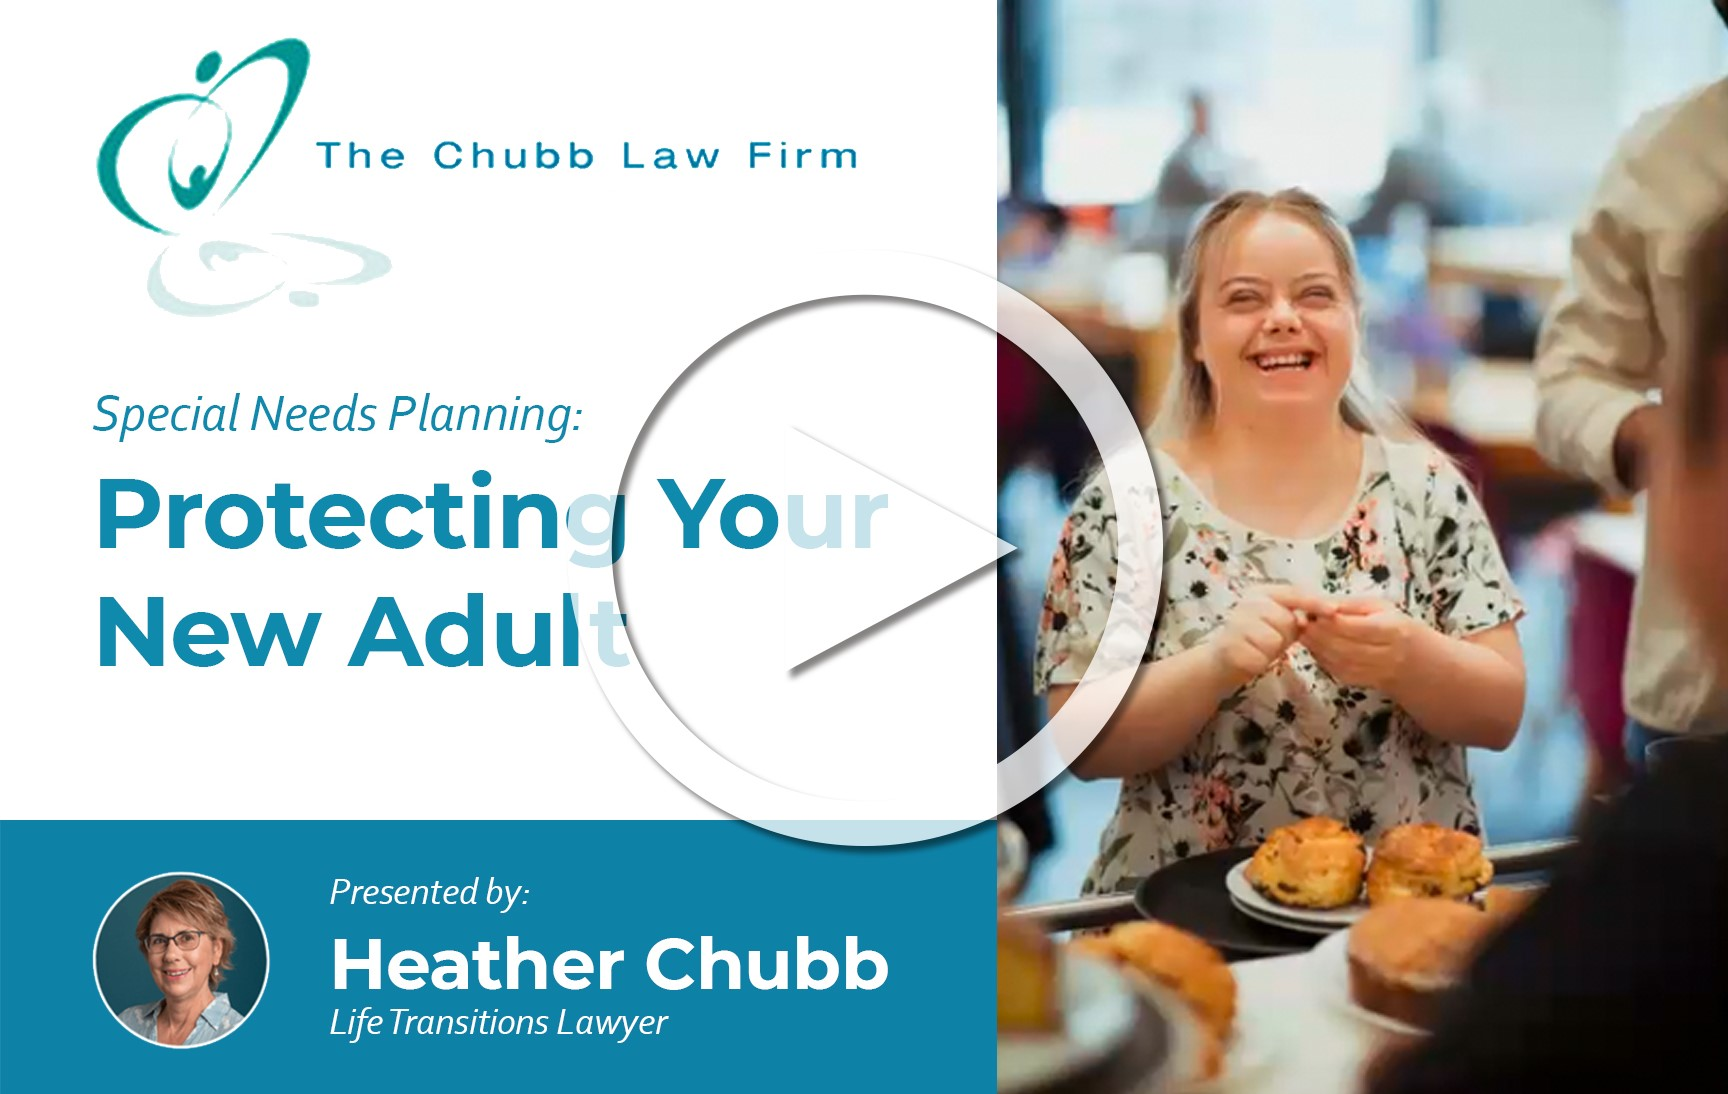 Special Needs Planning - Protecting Your New Adult